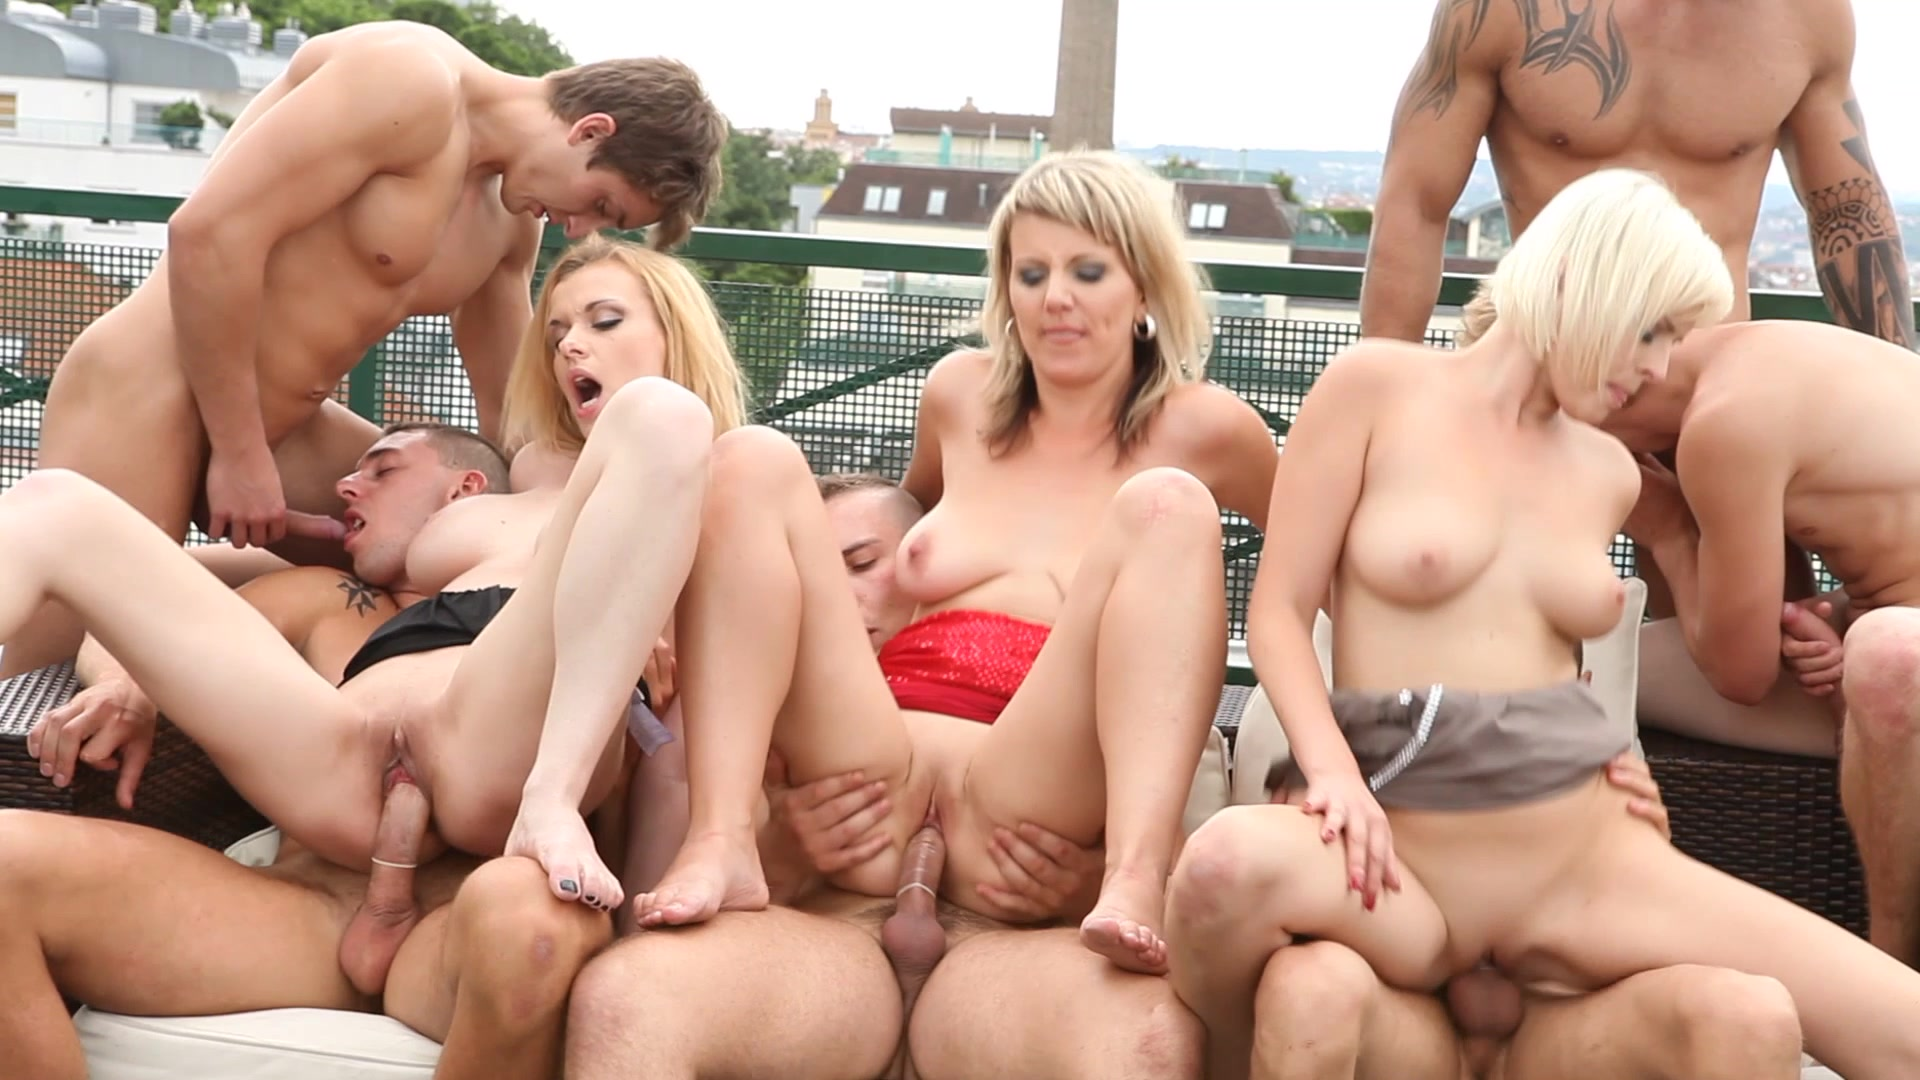 Watch german orgy party porn full picture online free